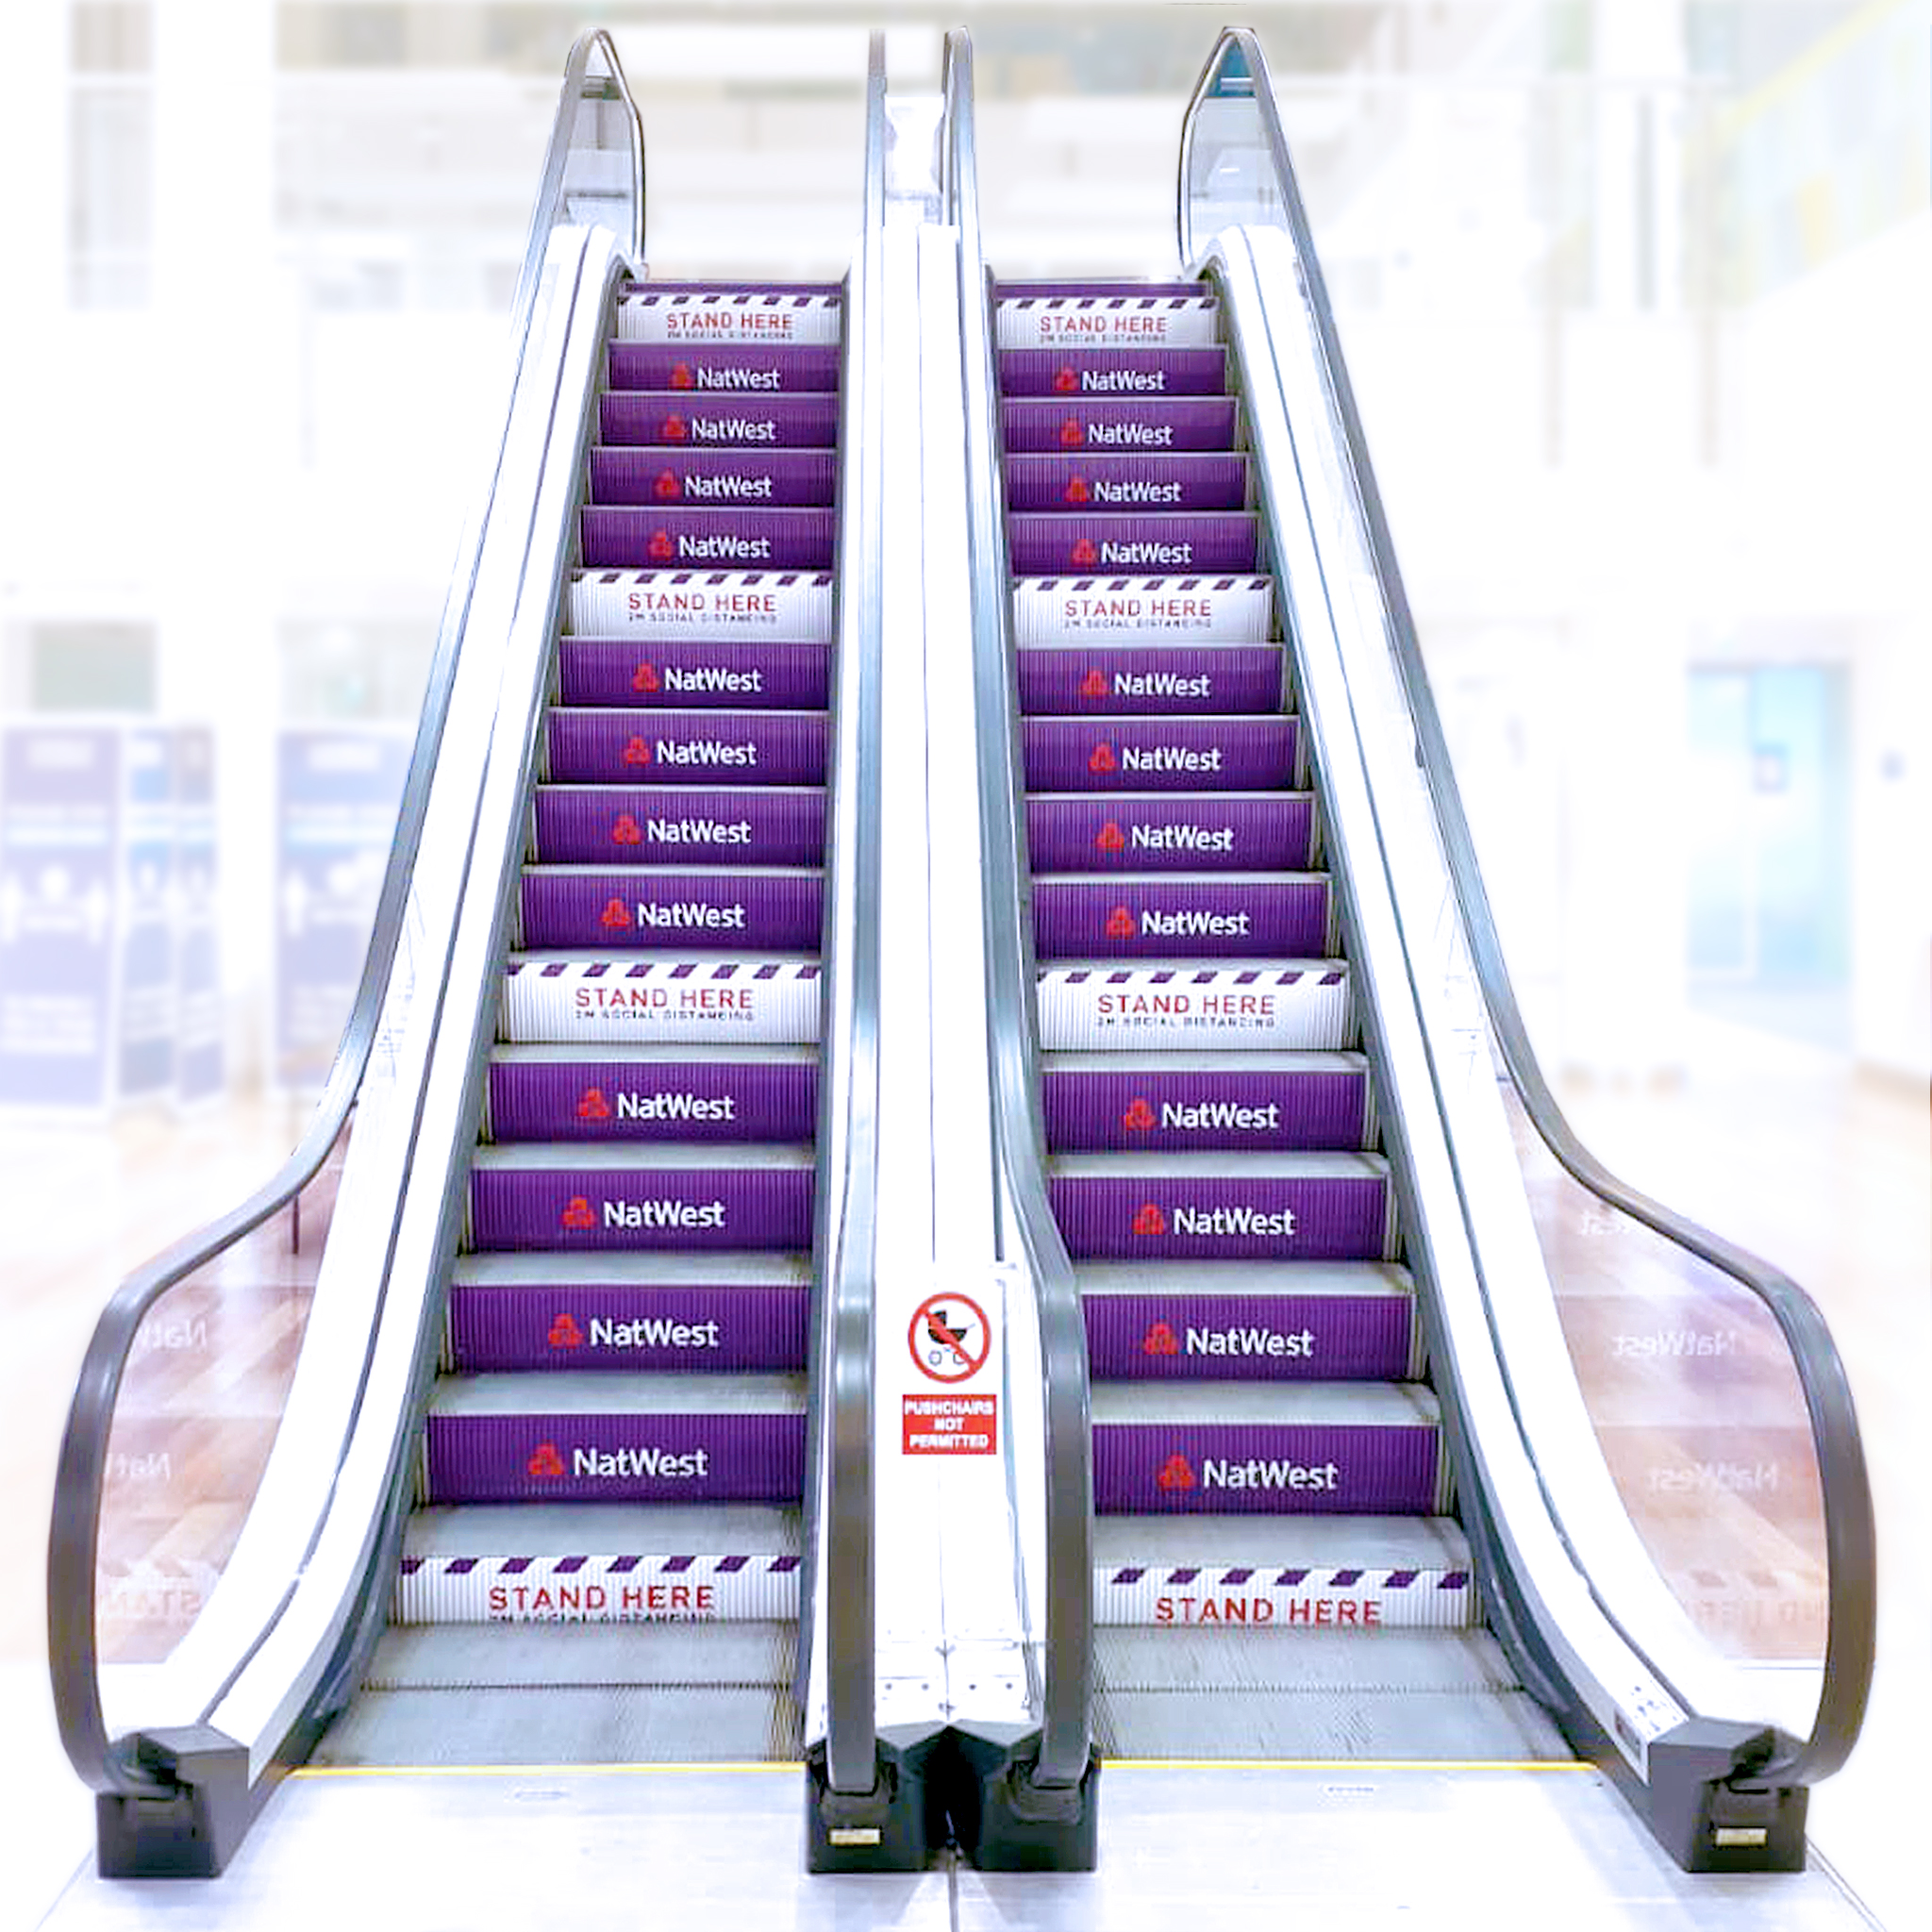 NatWest Social Distancing Awareness Escalator Step Branding